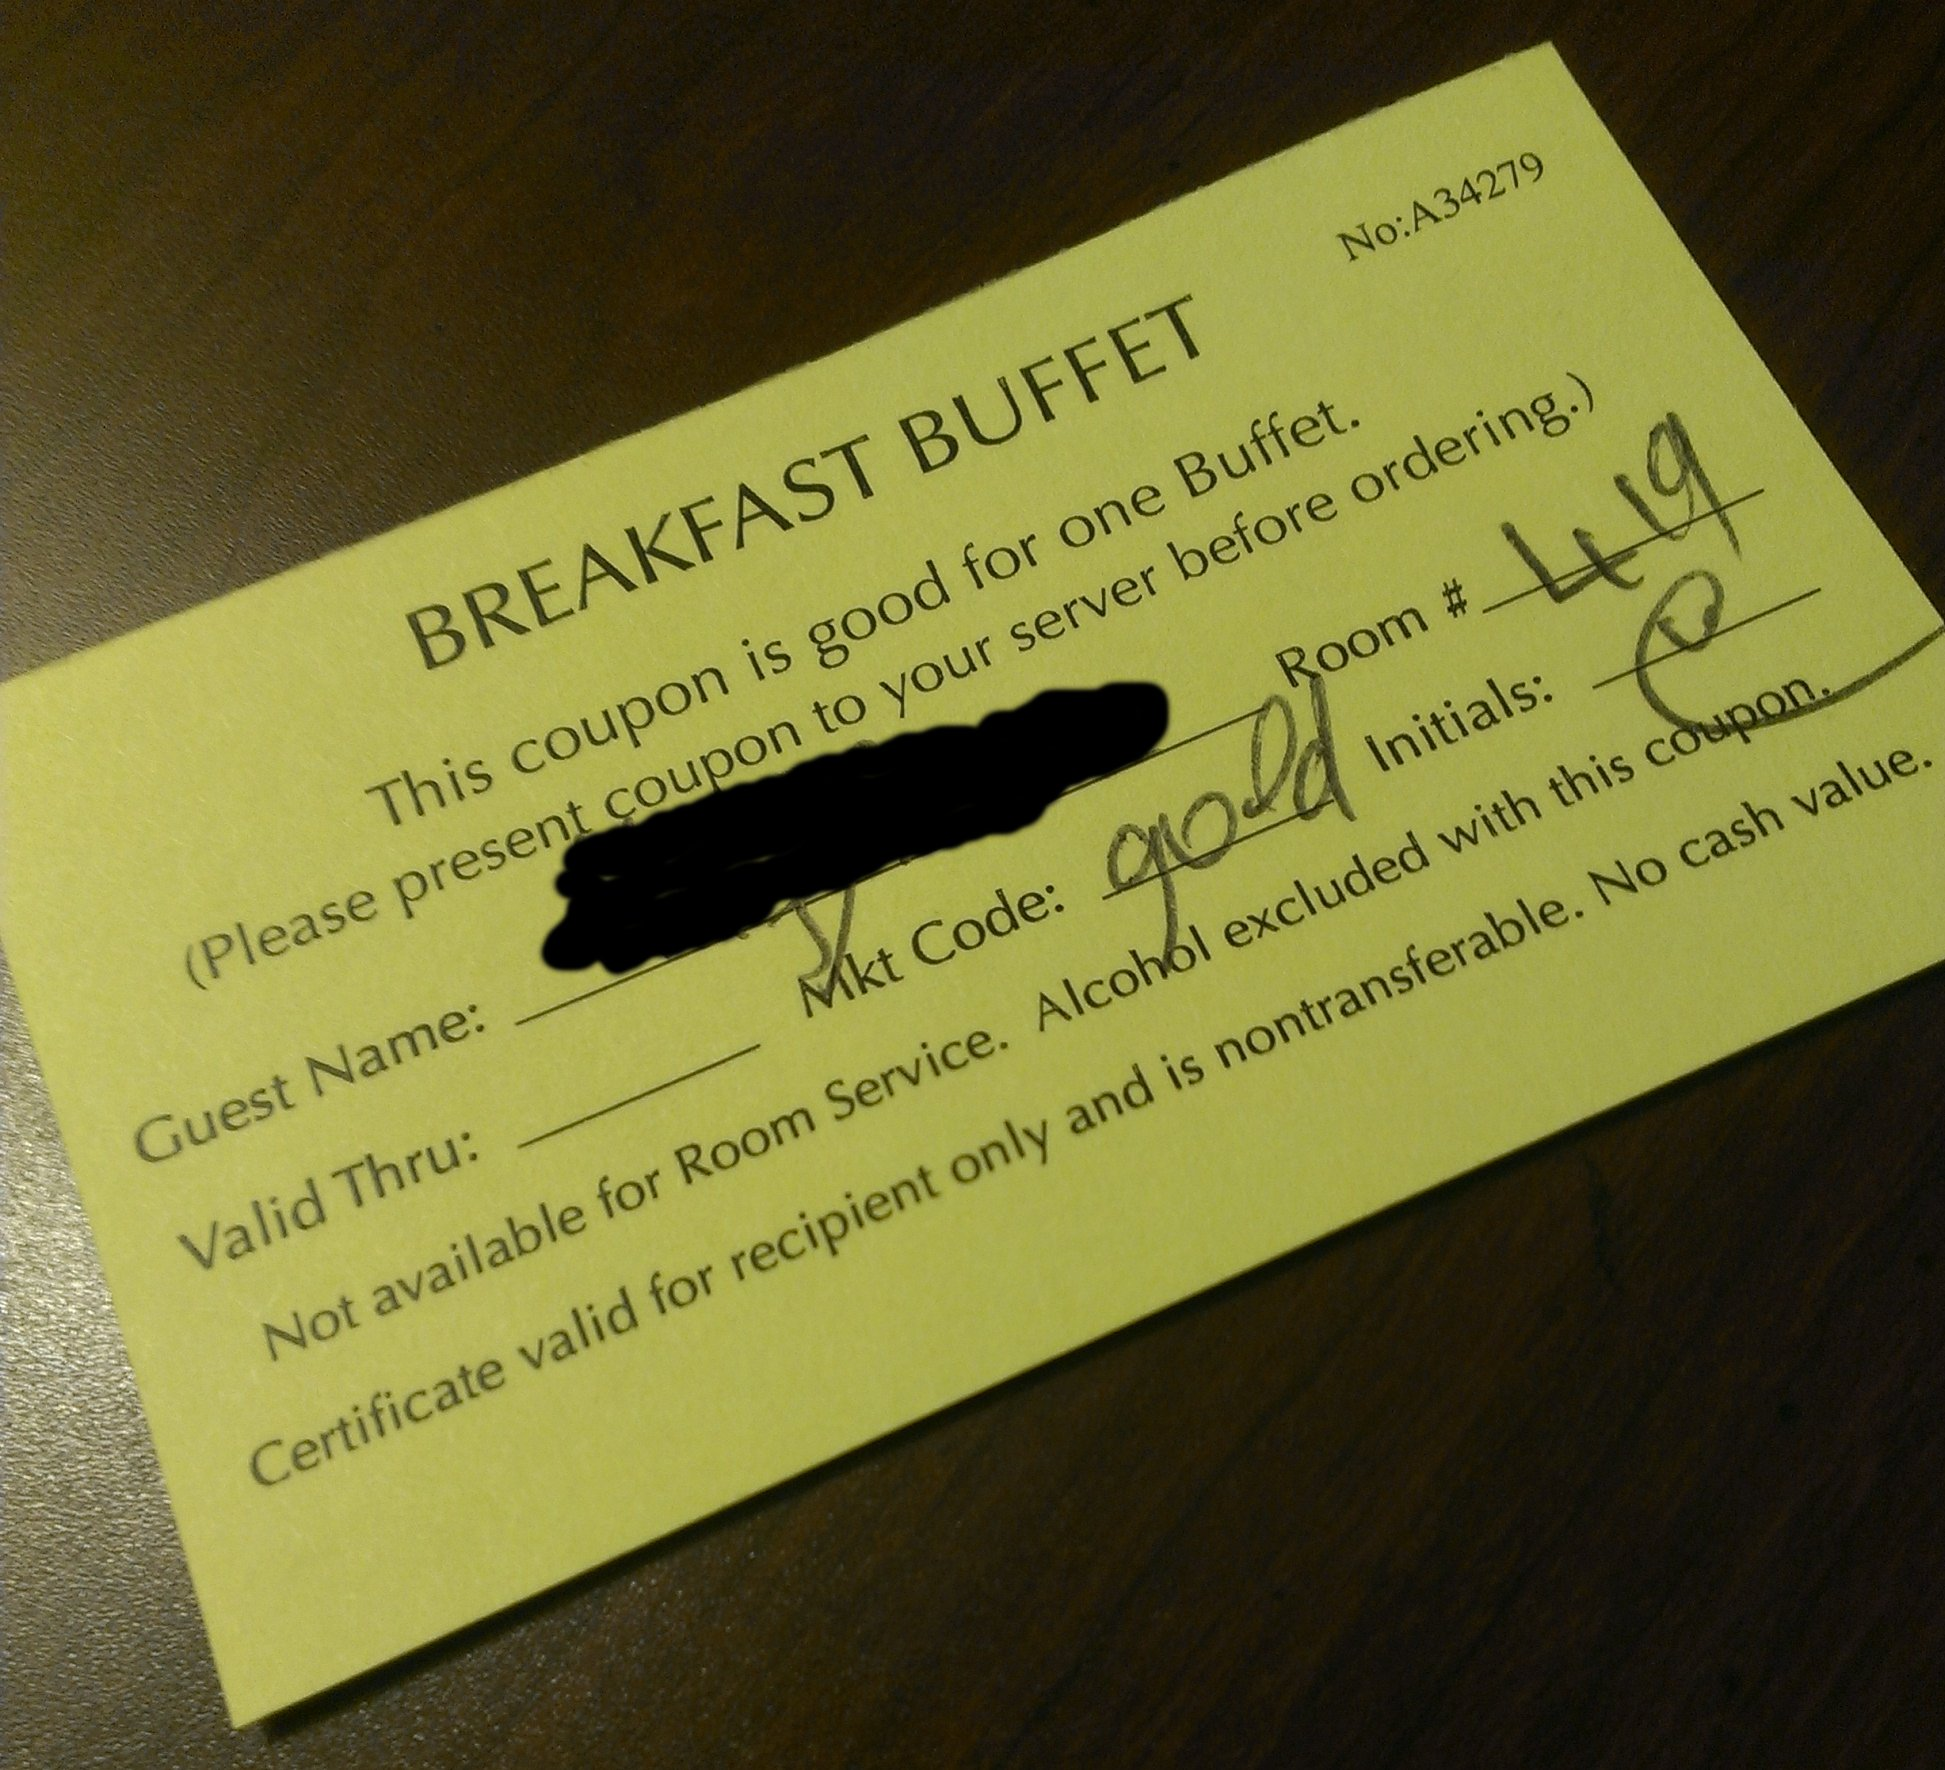 Hilton hhonors breakfast coupons